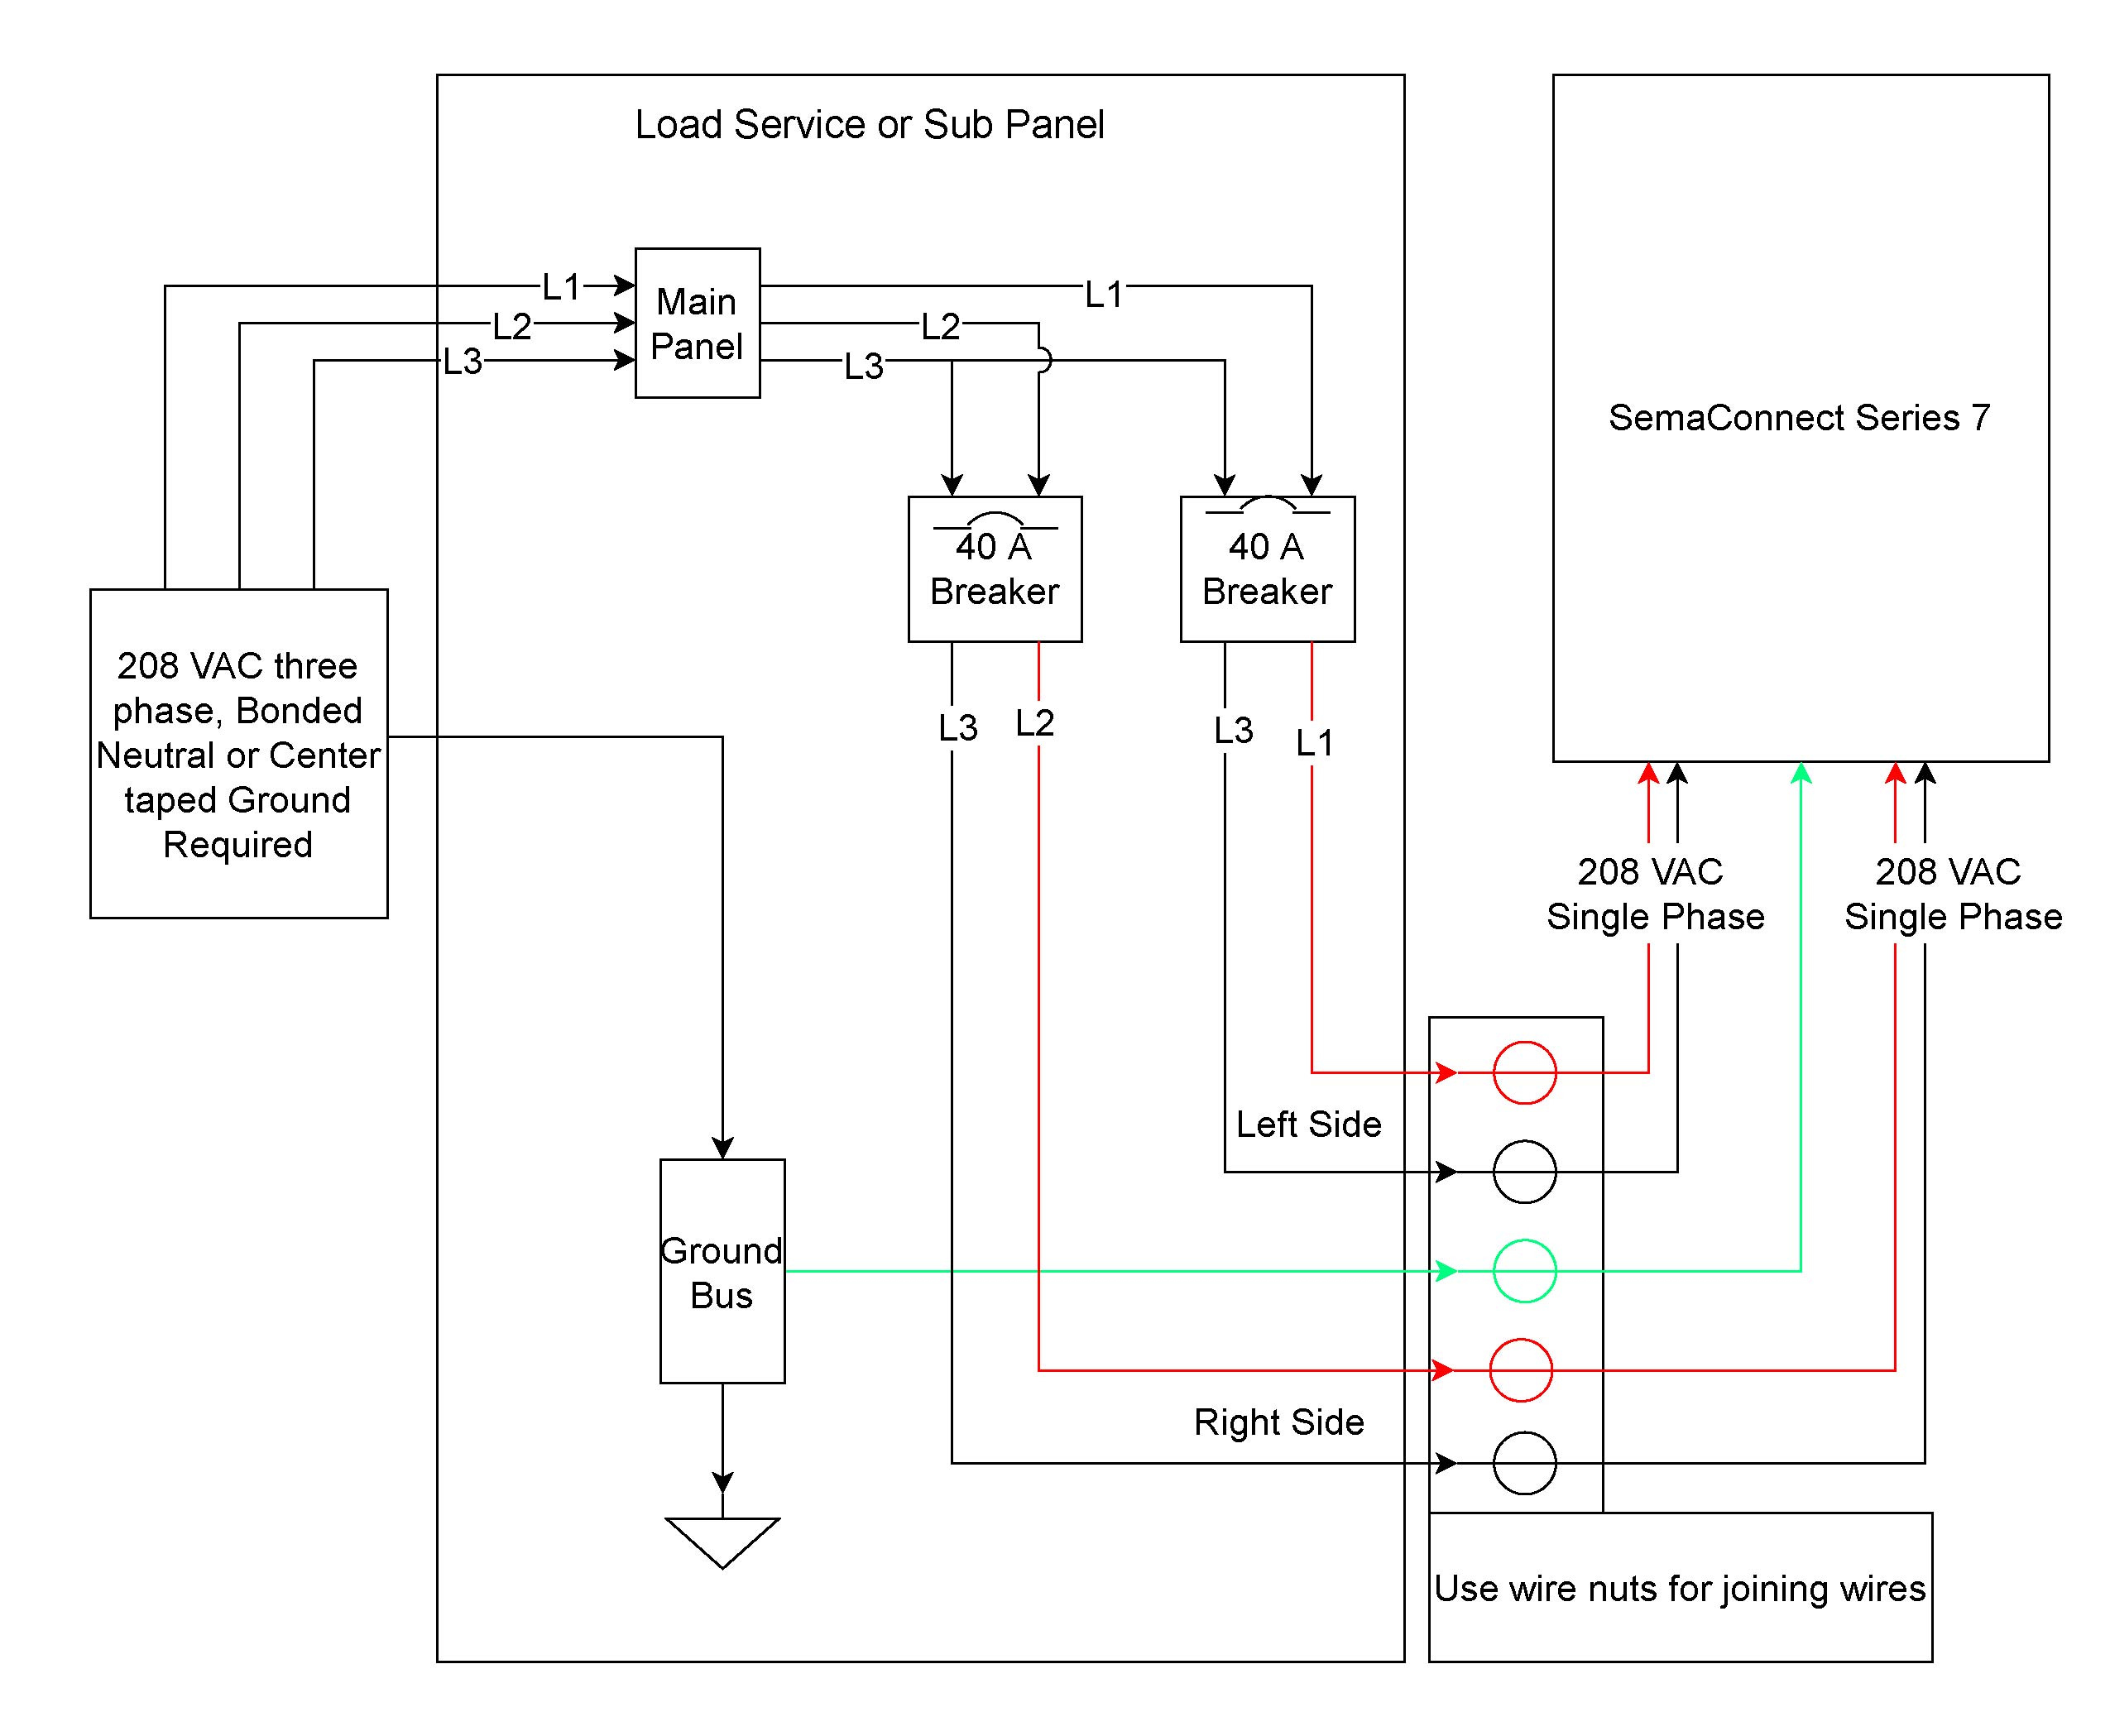 Dometic A C Wire Diagram - Fusebox and Wiring Diagram cable-penny -  cable-penny.parliamoneassieme.itdiagram database